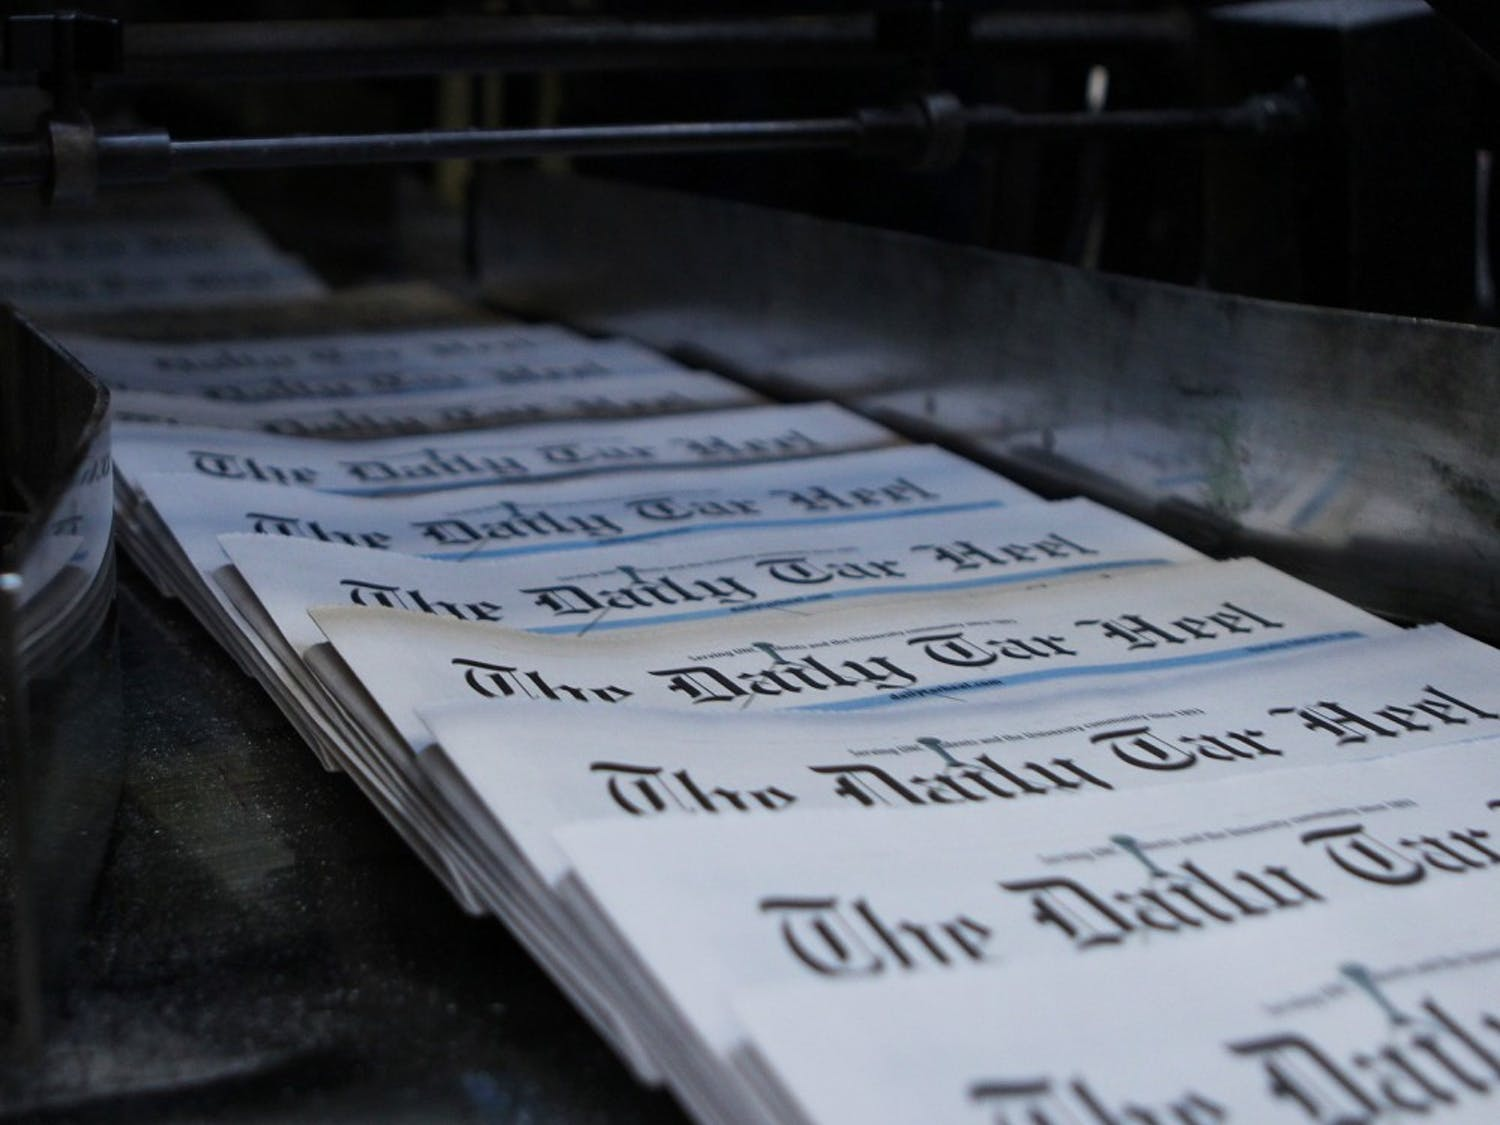 Newspapers come off the press to be bundled for delivery.